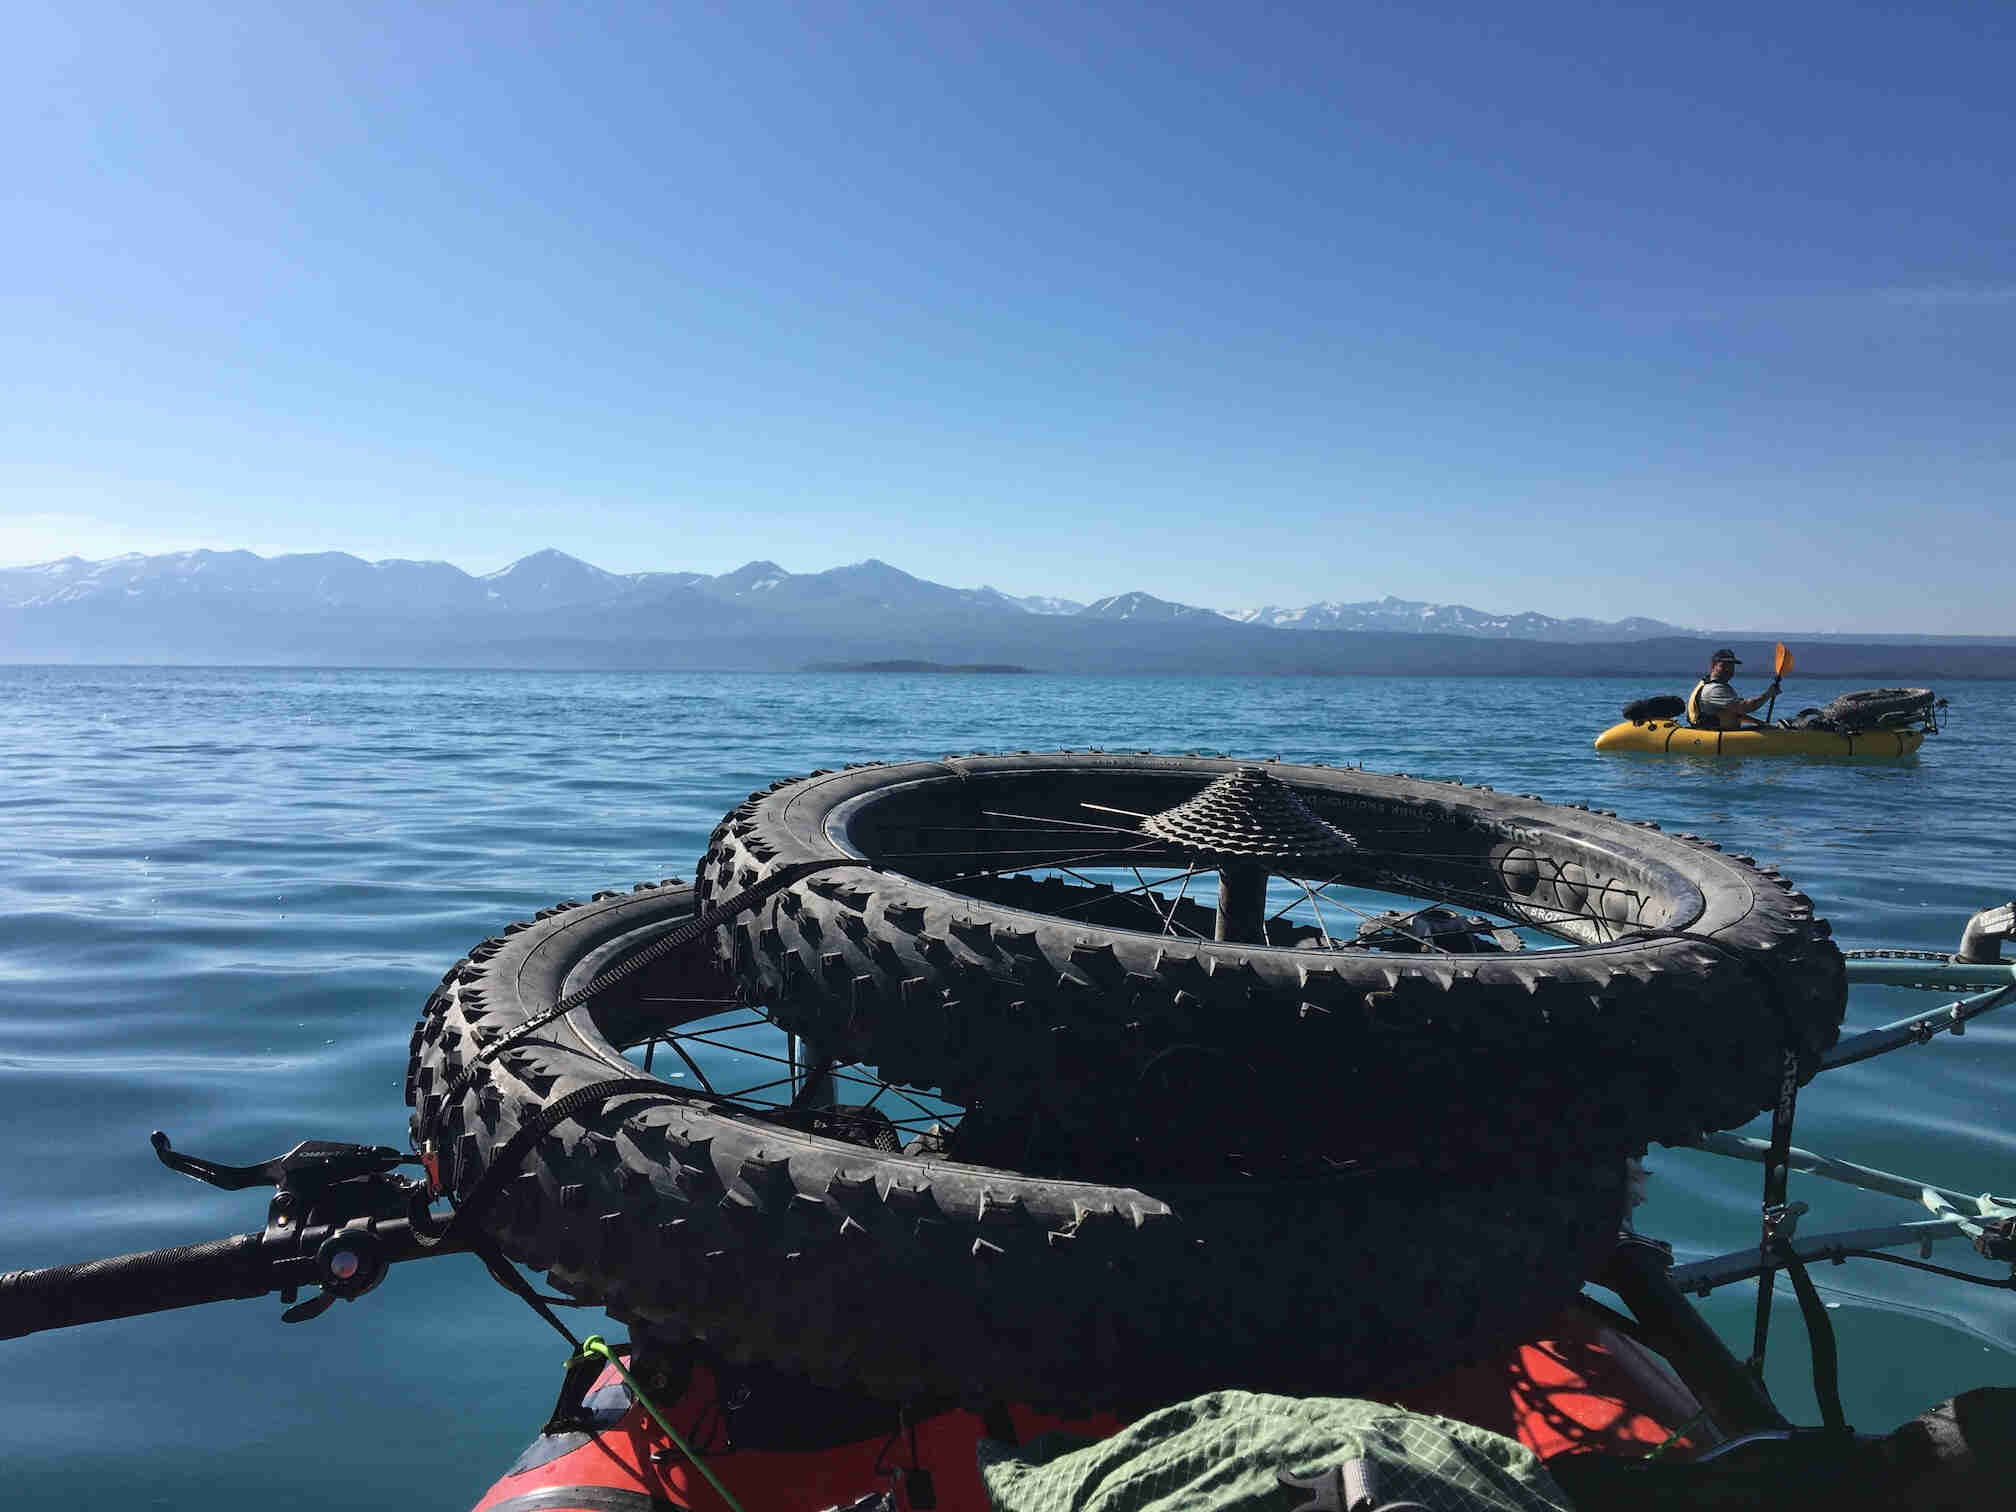 Close up of fat bike wheels on the front of a kayak on a lake, with mountains in the background